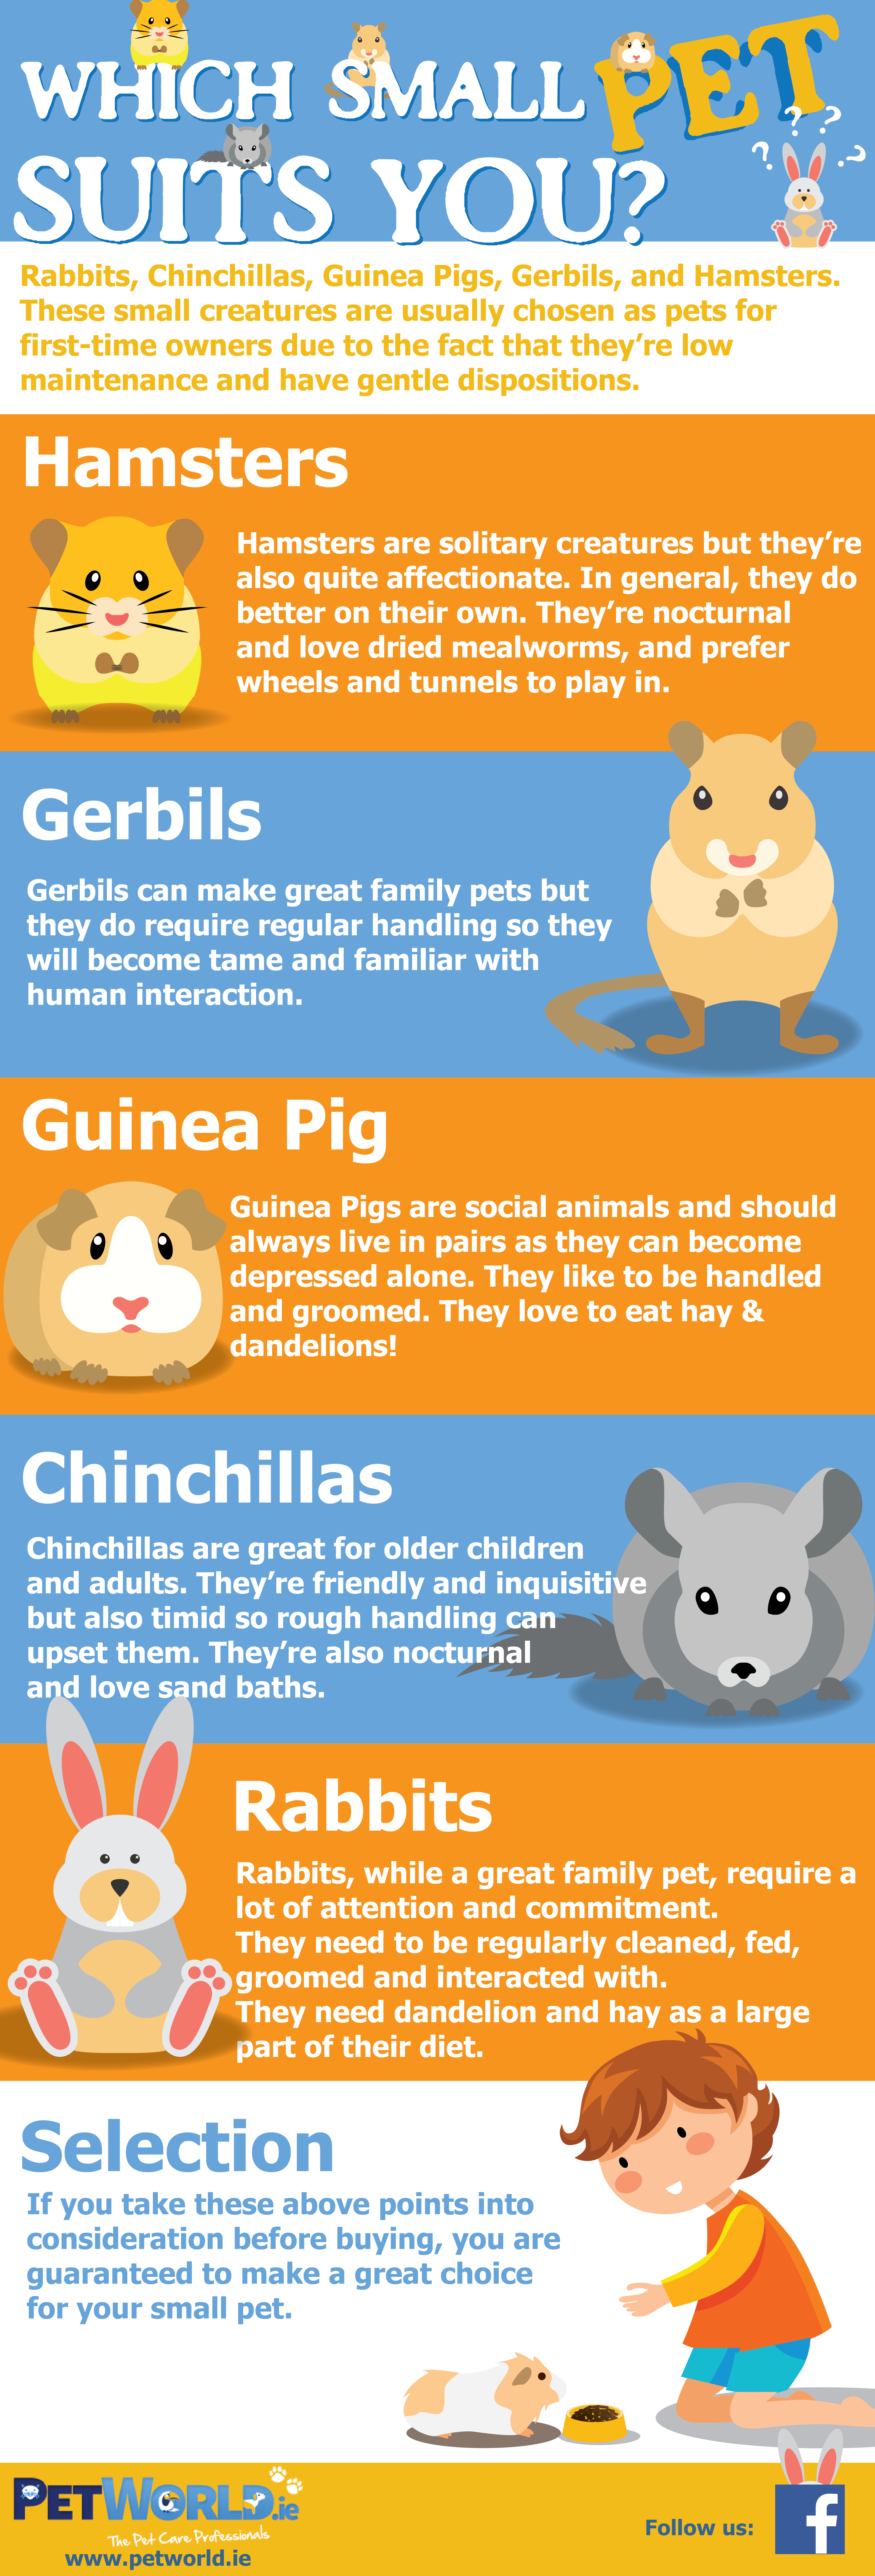 which small pet suits you infographic